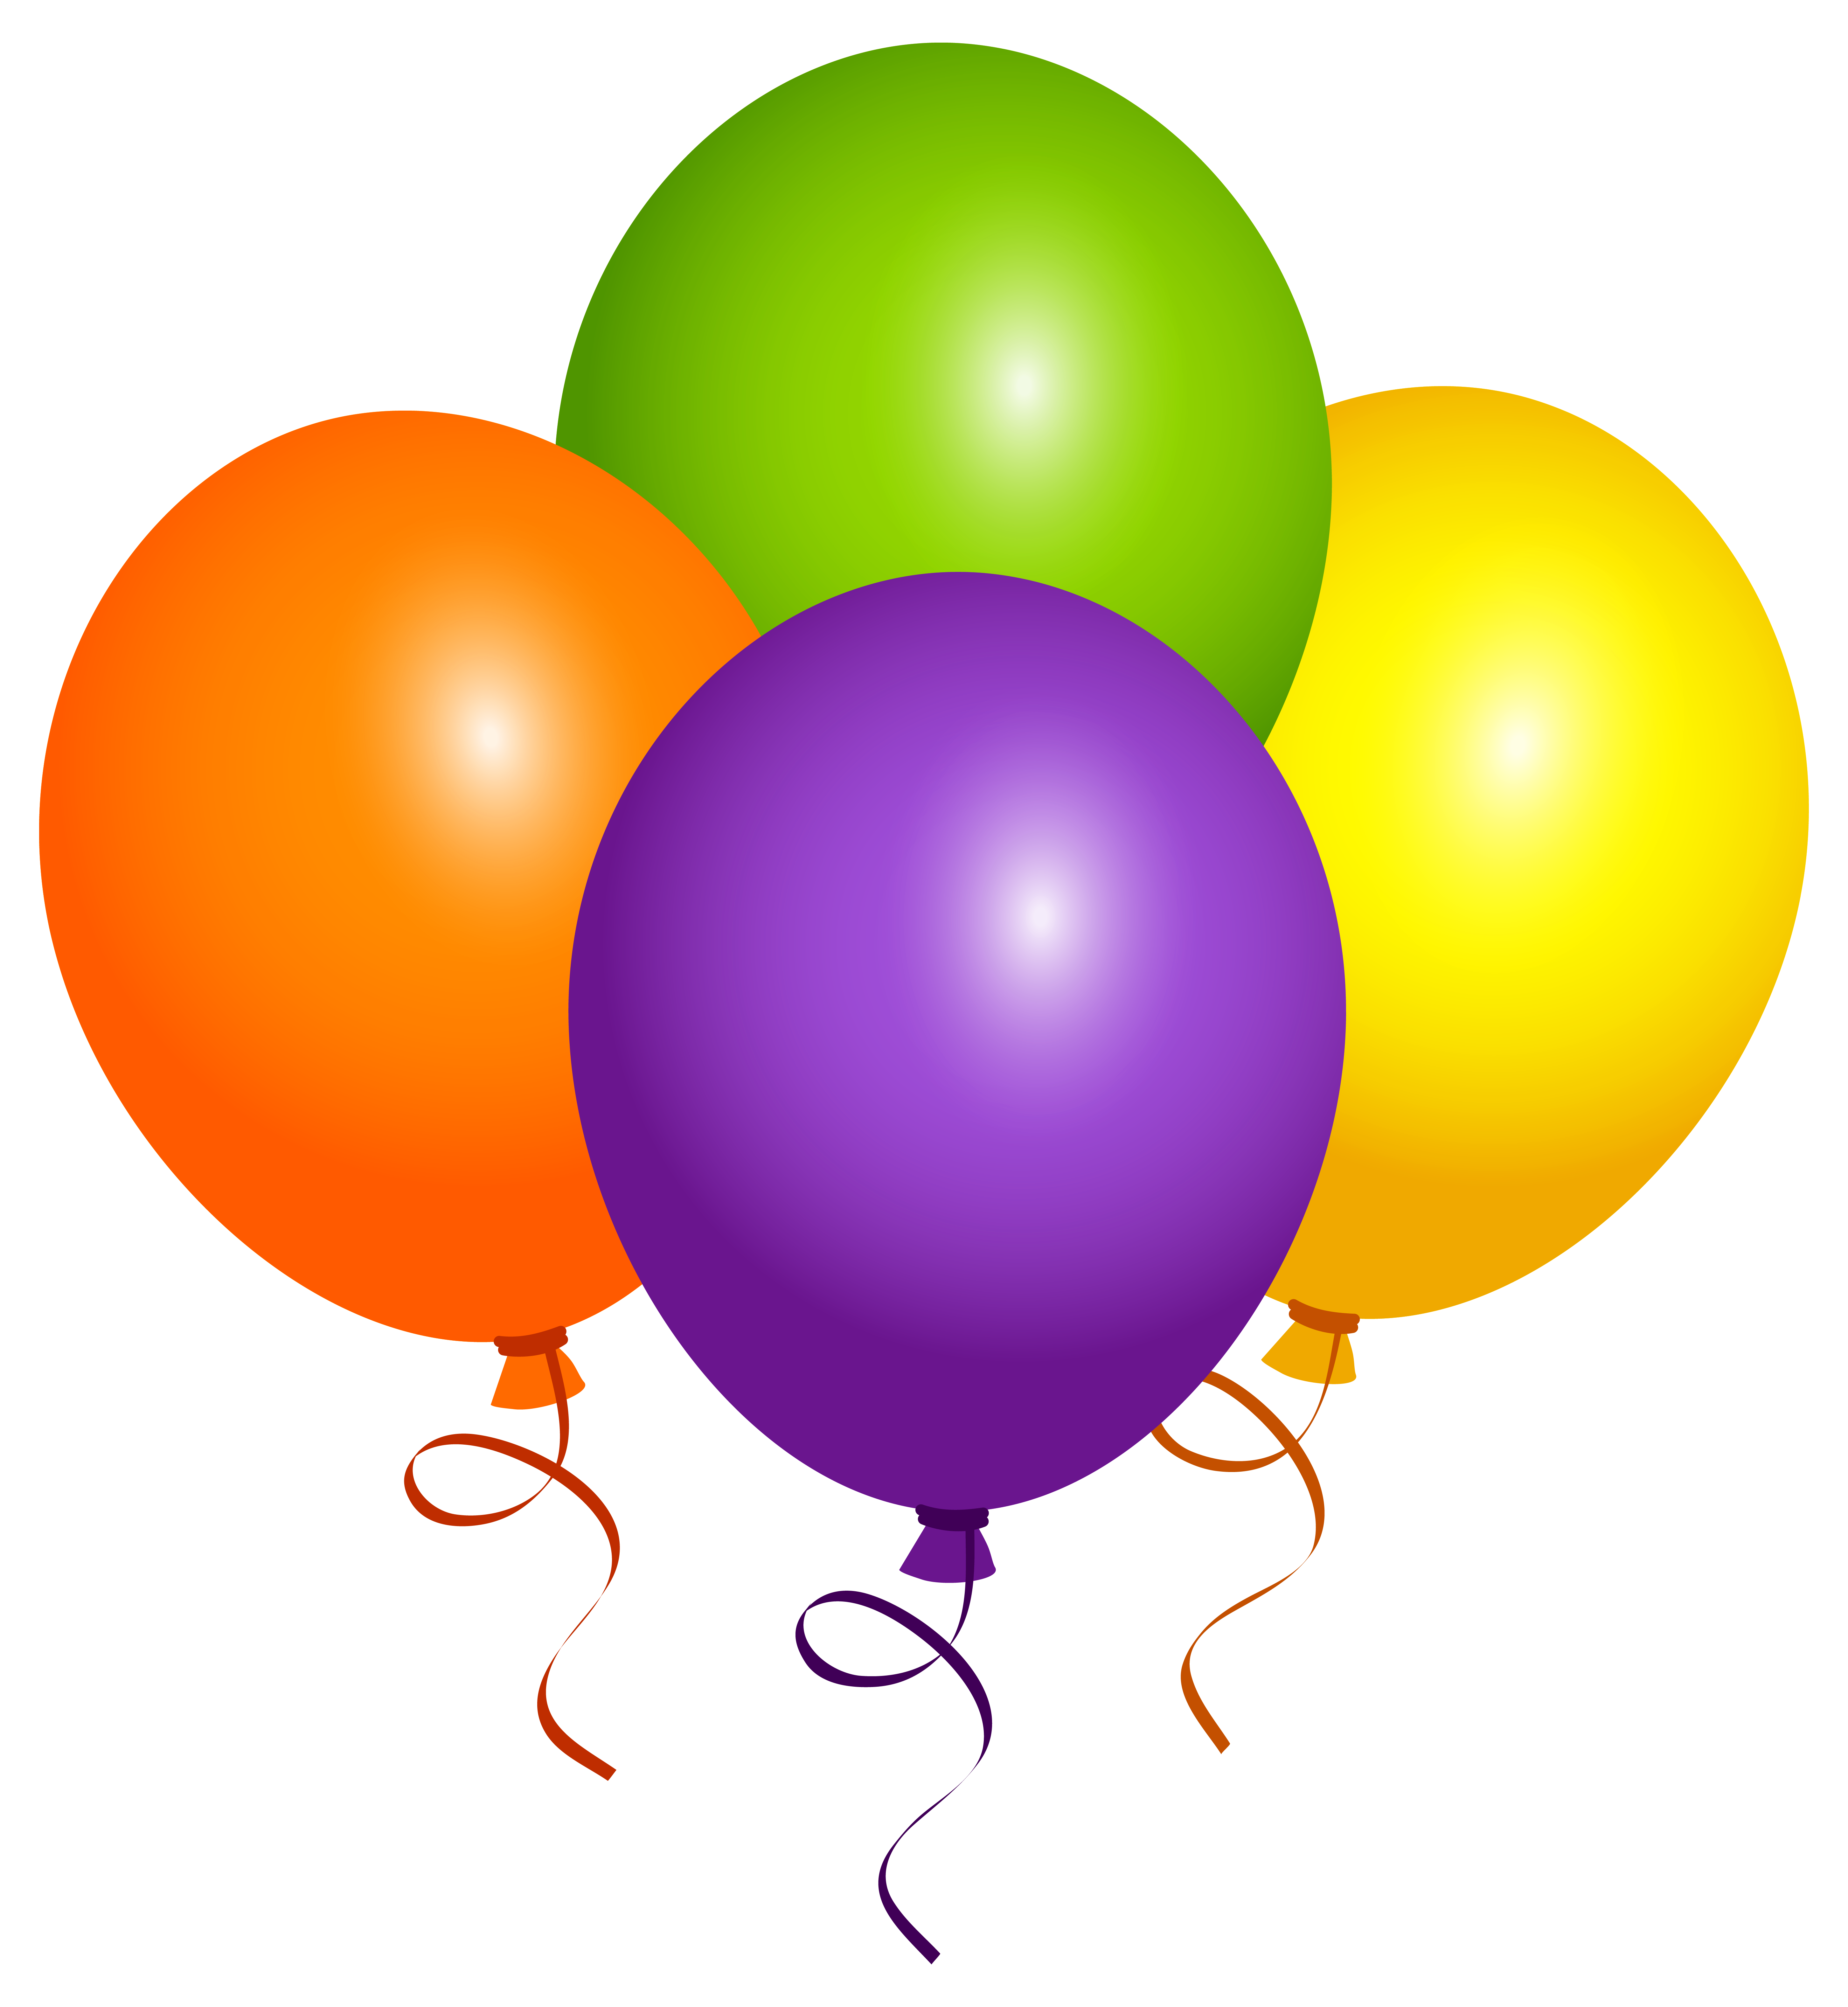 Large balloons png image. Clipart balloon summer